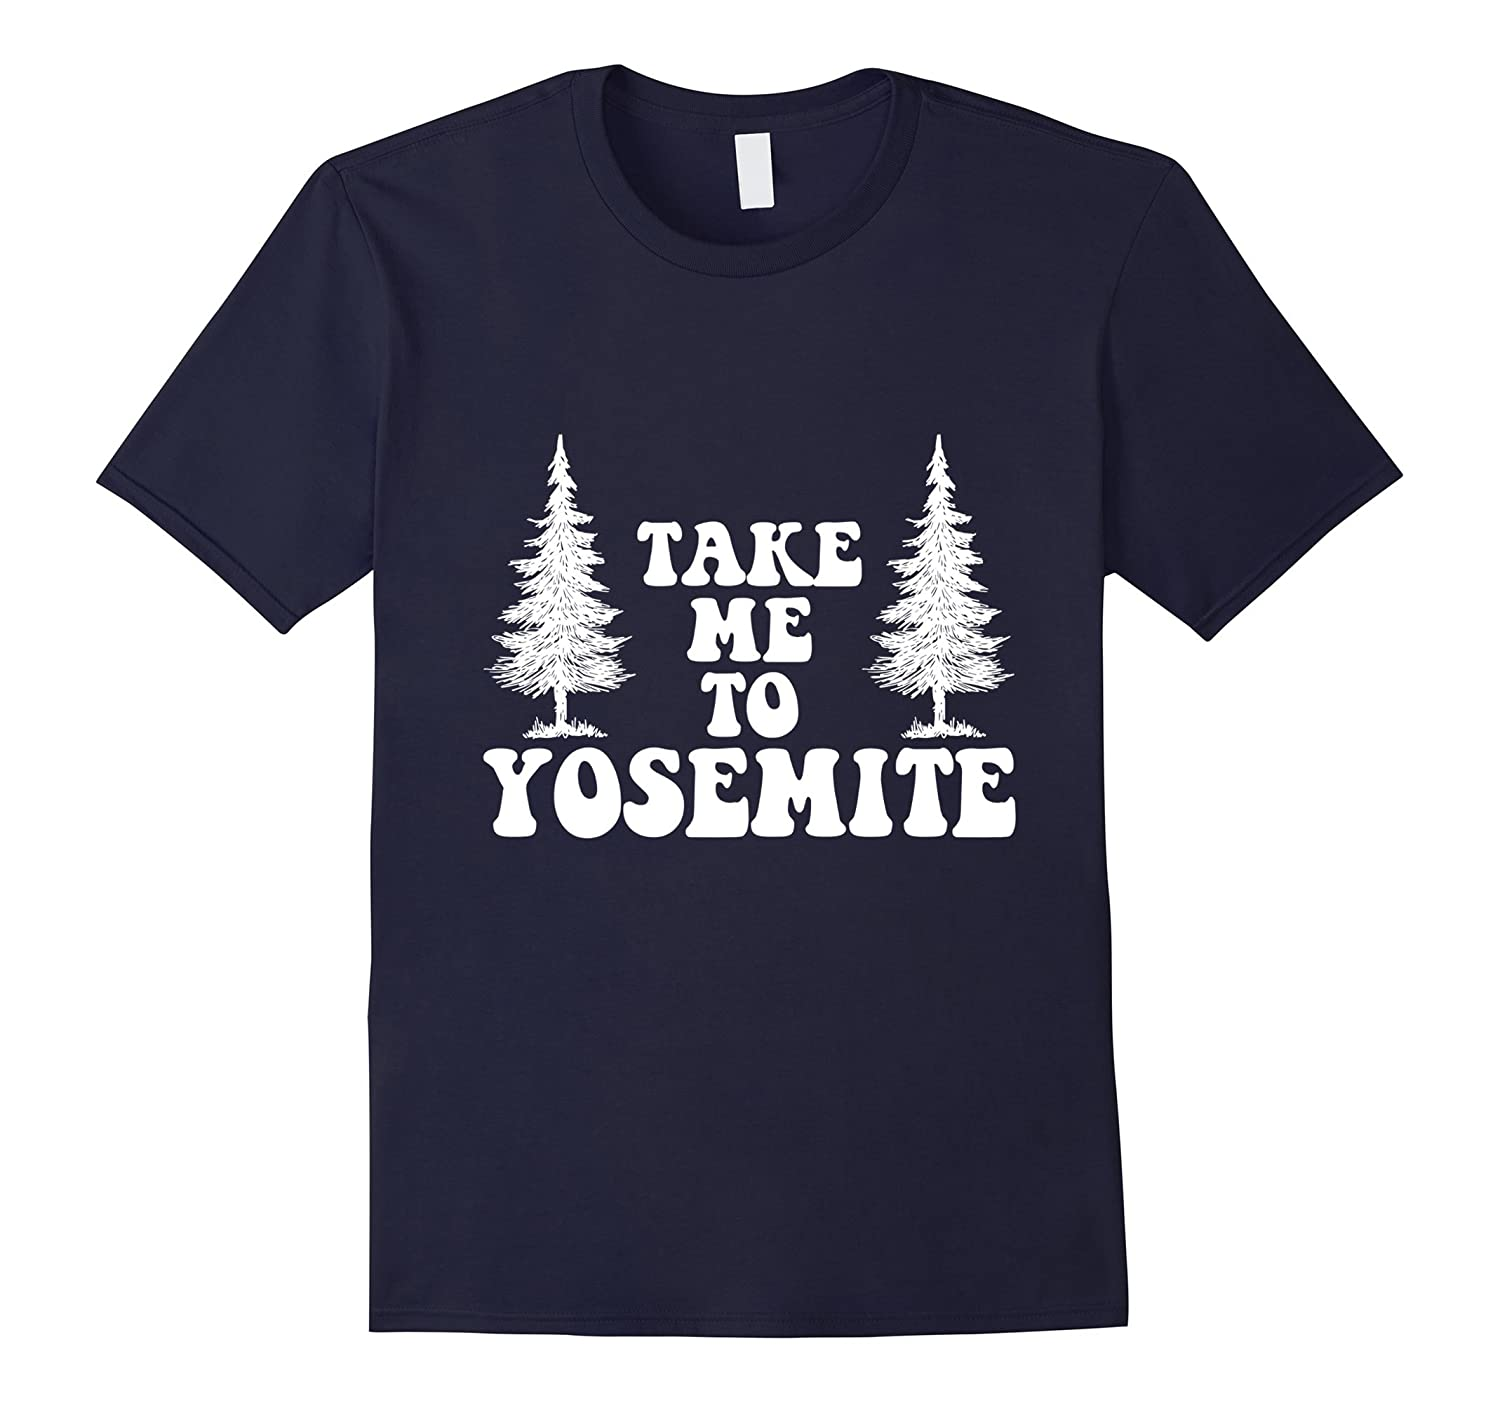 Take Me To Yosemite T-Shirt, Funny Camper Love Camping Quote-TH